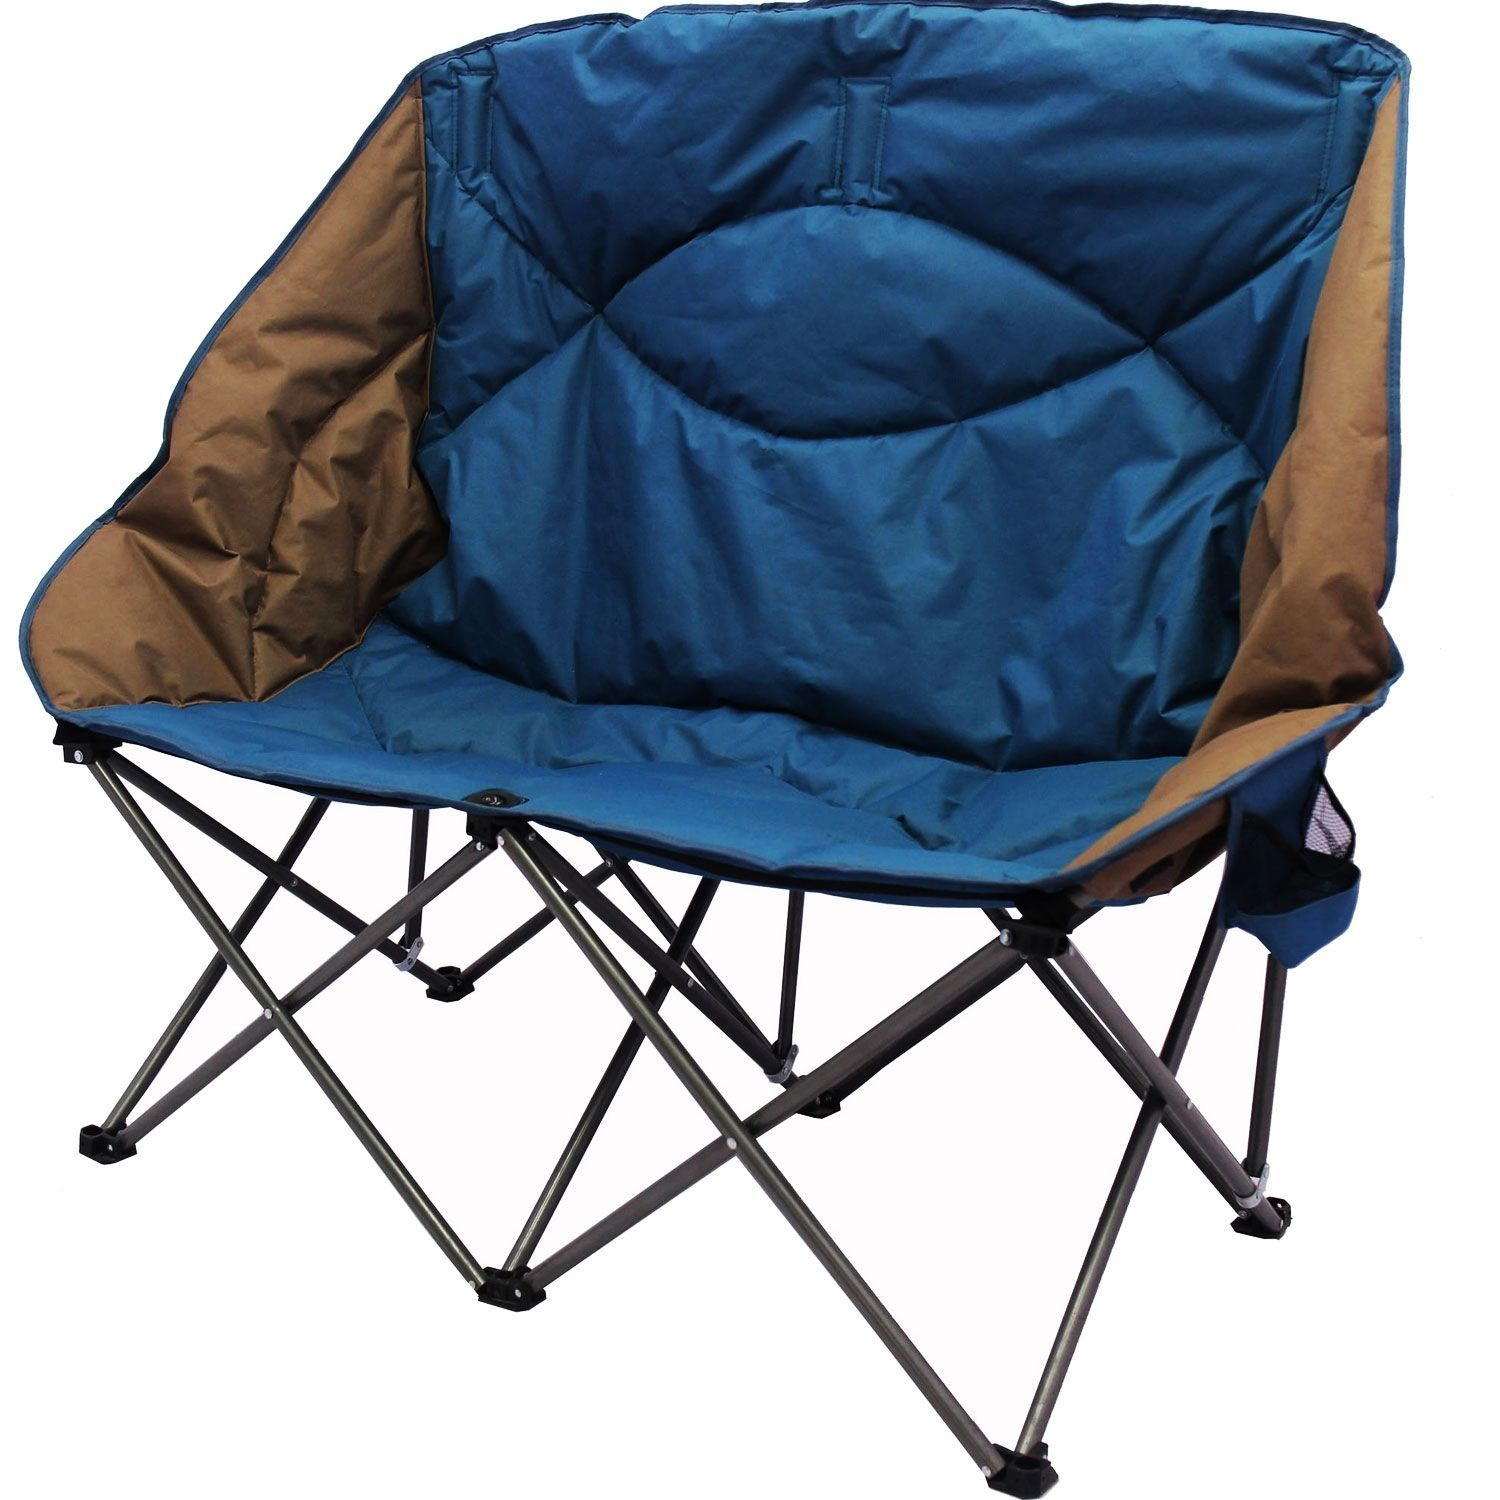 Camping Furniture 16038 Double Folding Chair Portable